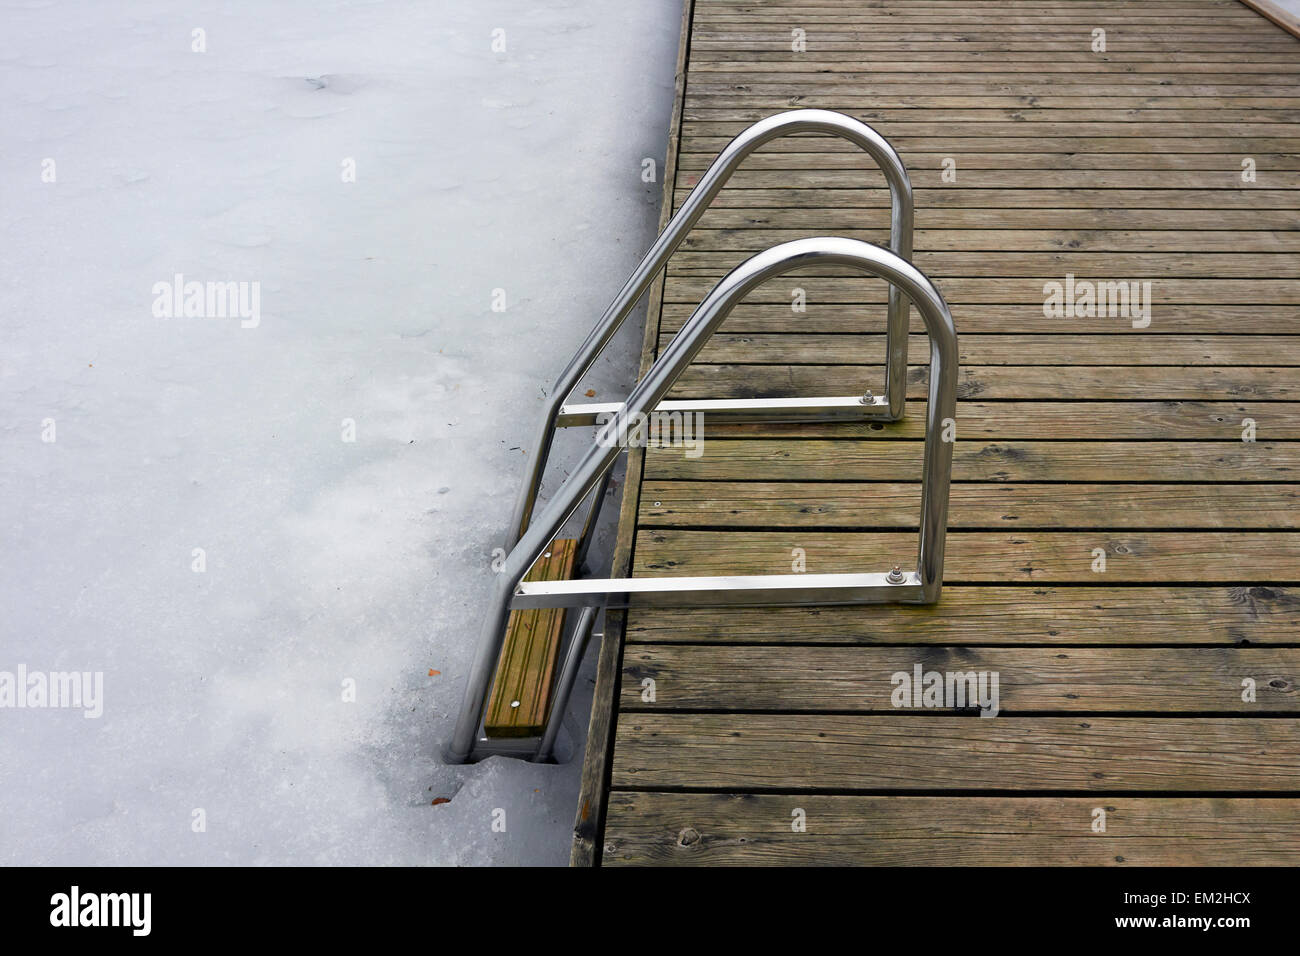 hand-rails leading to frozen lake, Finland - Stock Image